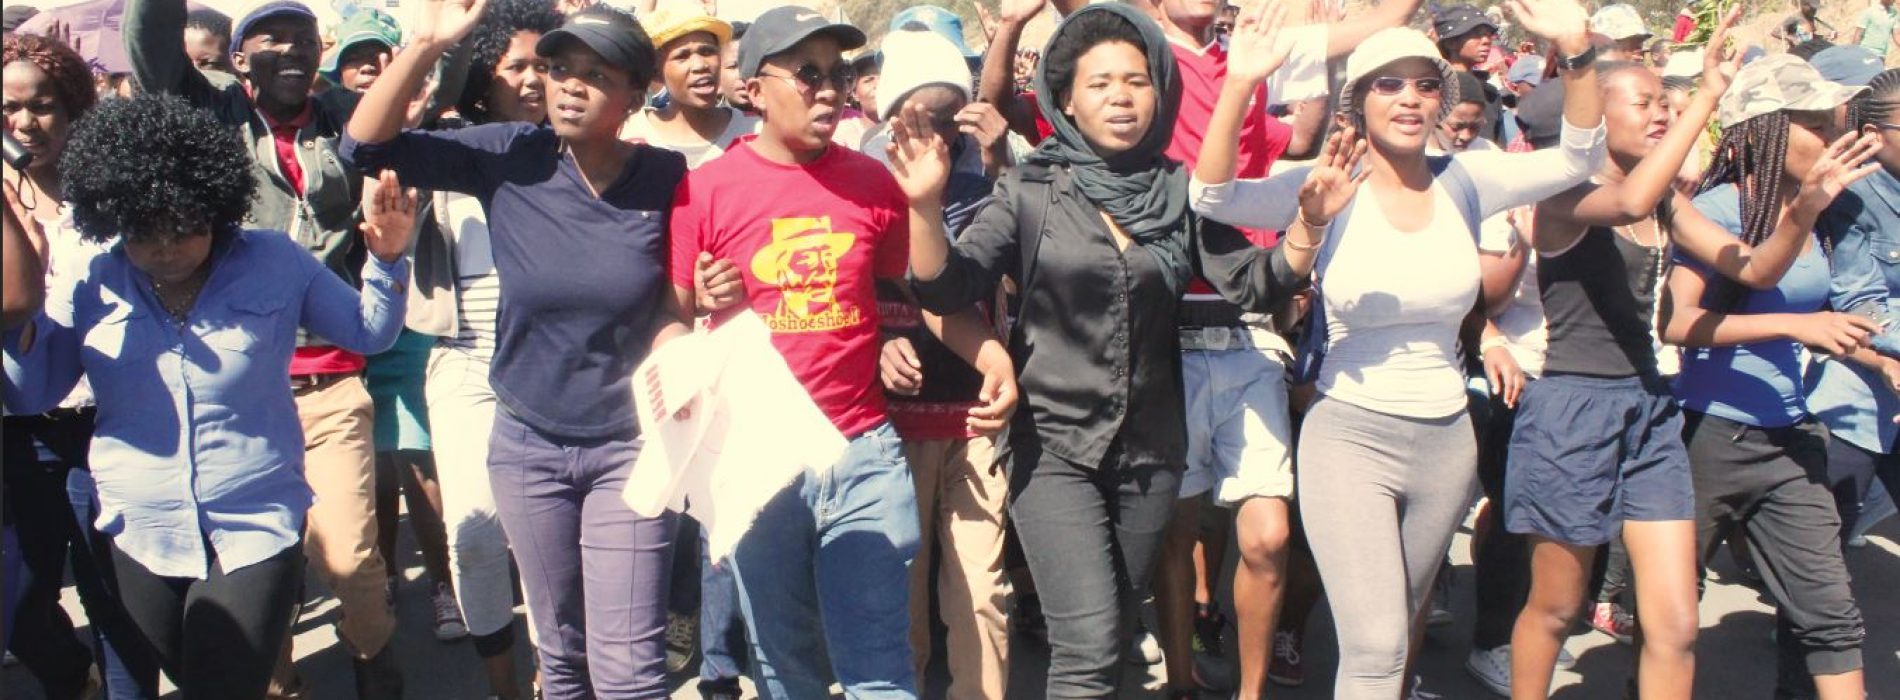 NUL students face theft charges